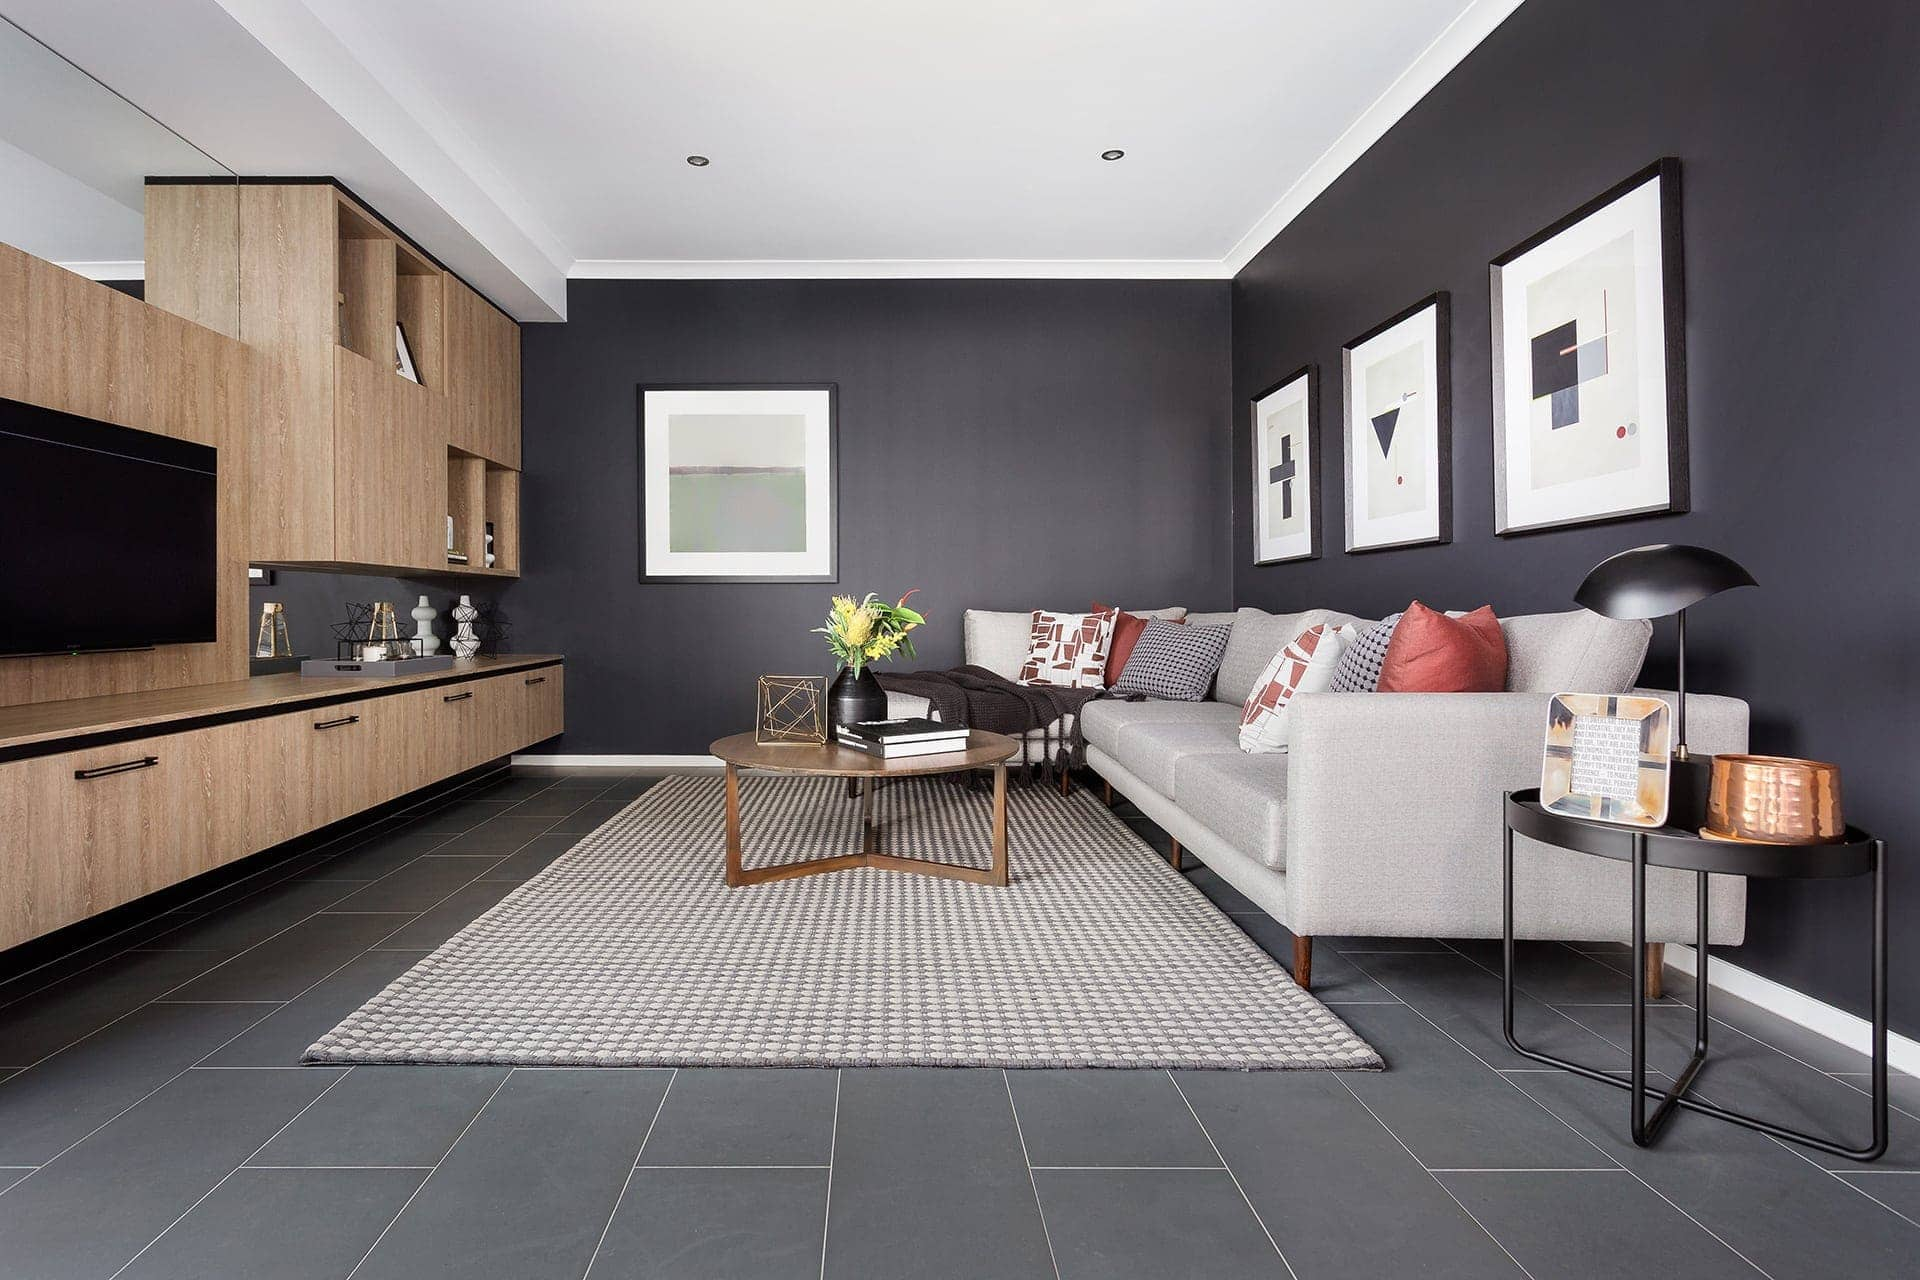 Superb Colourful Living Room Furniture #1: Dark-grey-living-room-wall-with-floor-tiles-in-living-room-from-metricon.jpg